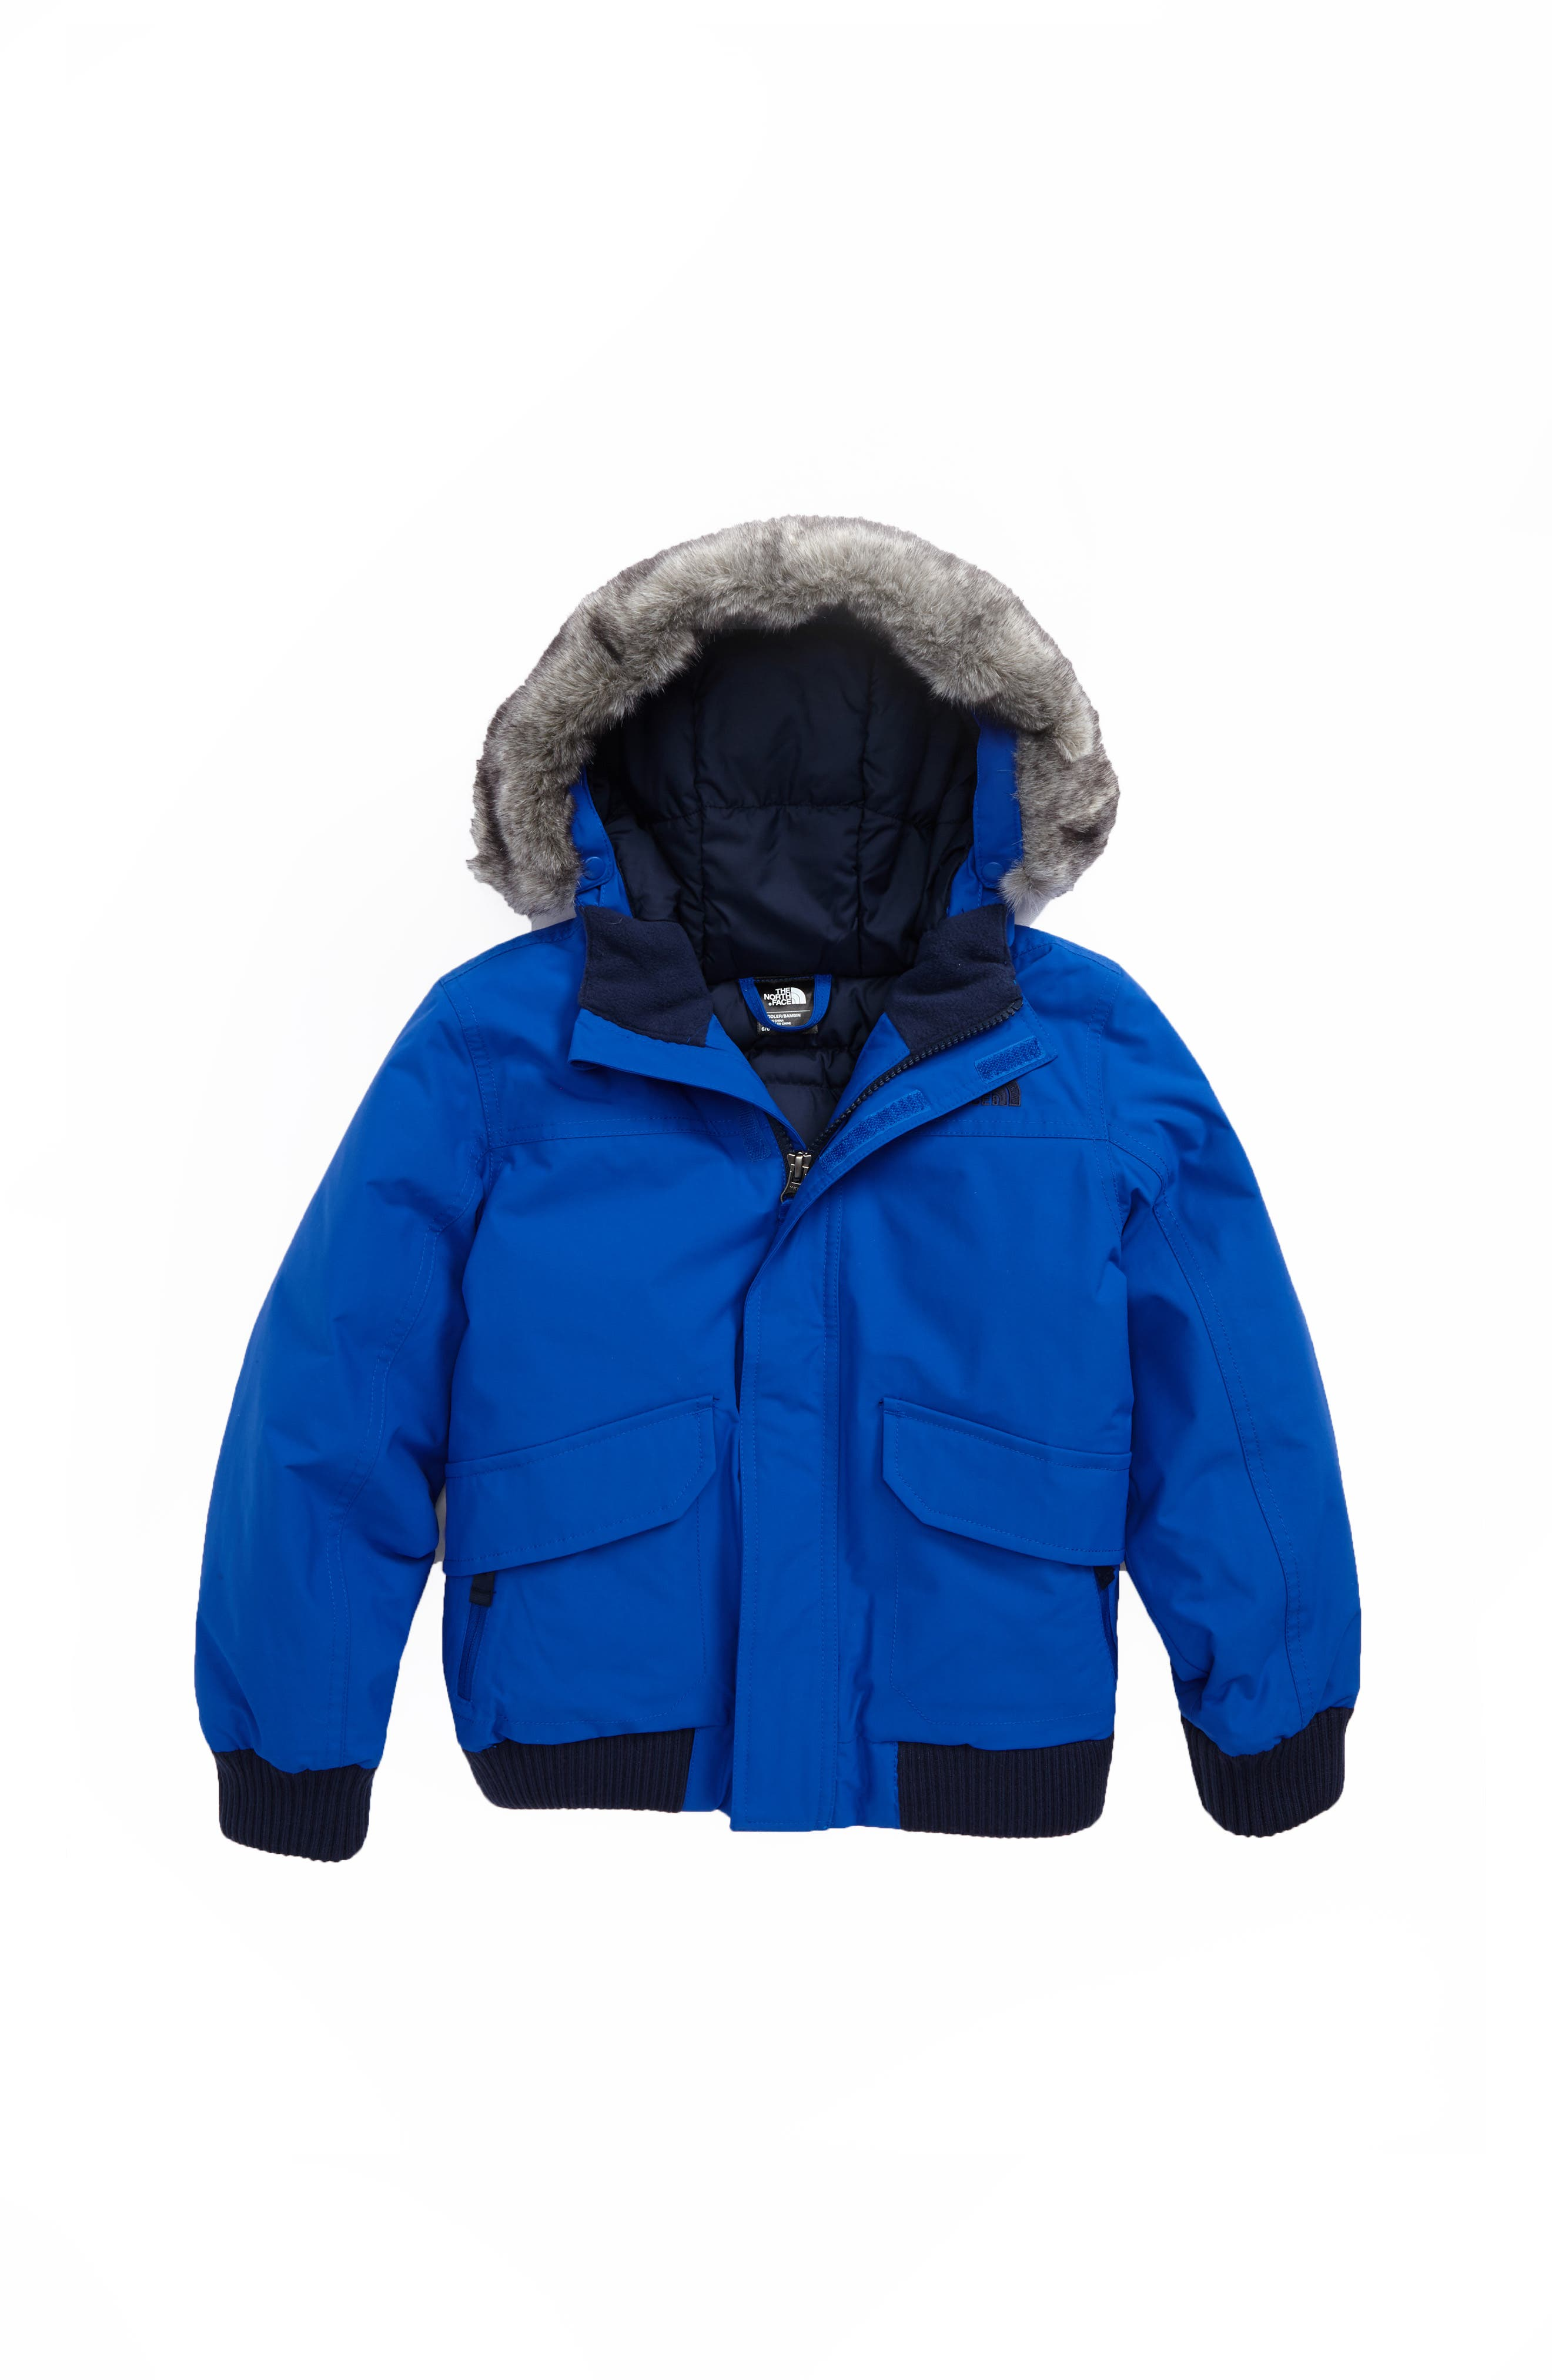 Alternate Image 1 Selected - The North Face Gotham Hooded Waterproof 550-Fill Power Down Jacket (Toddler Boys & Little Boys)